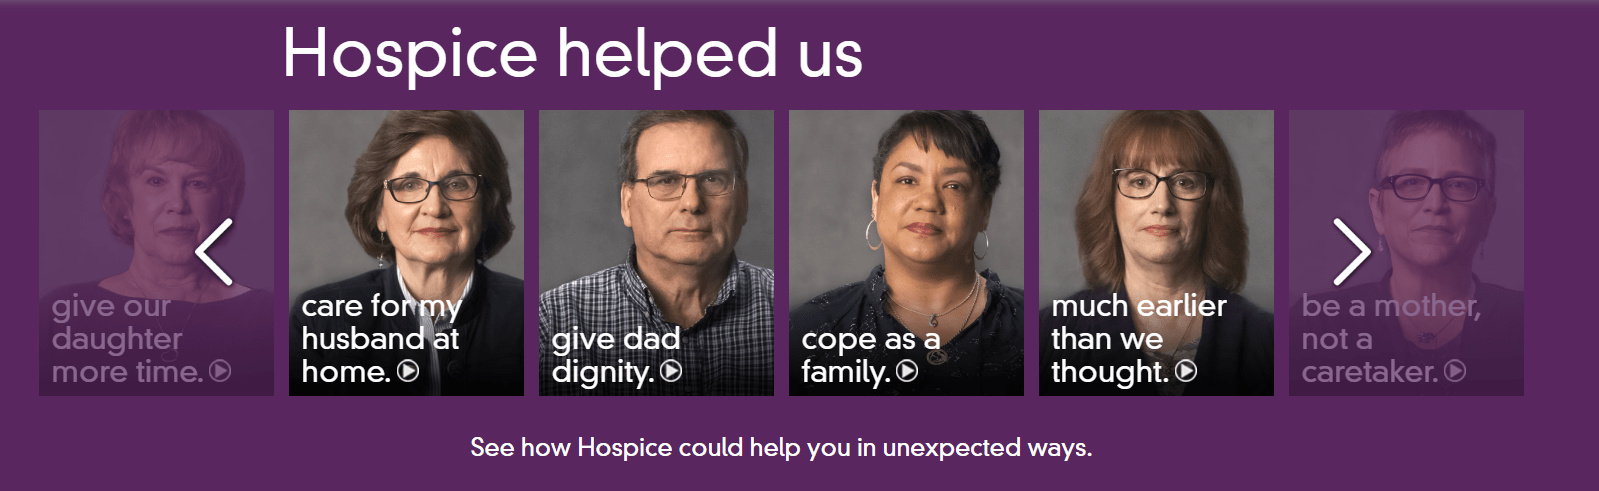 How Hospice Helped Us